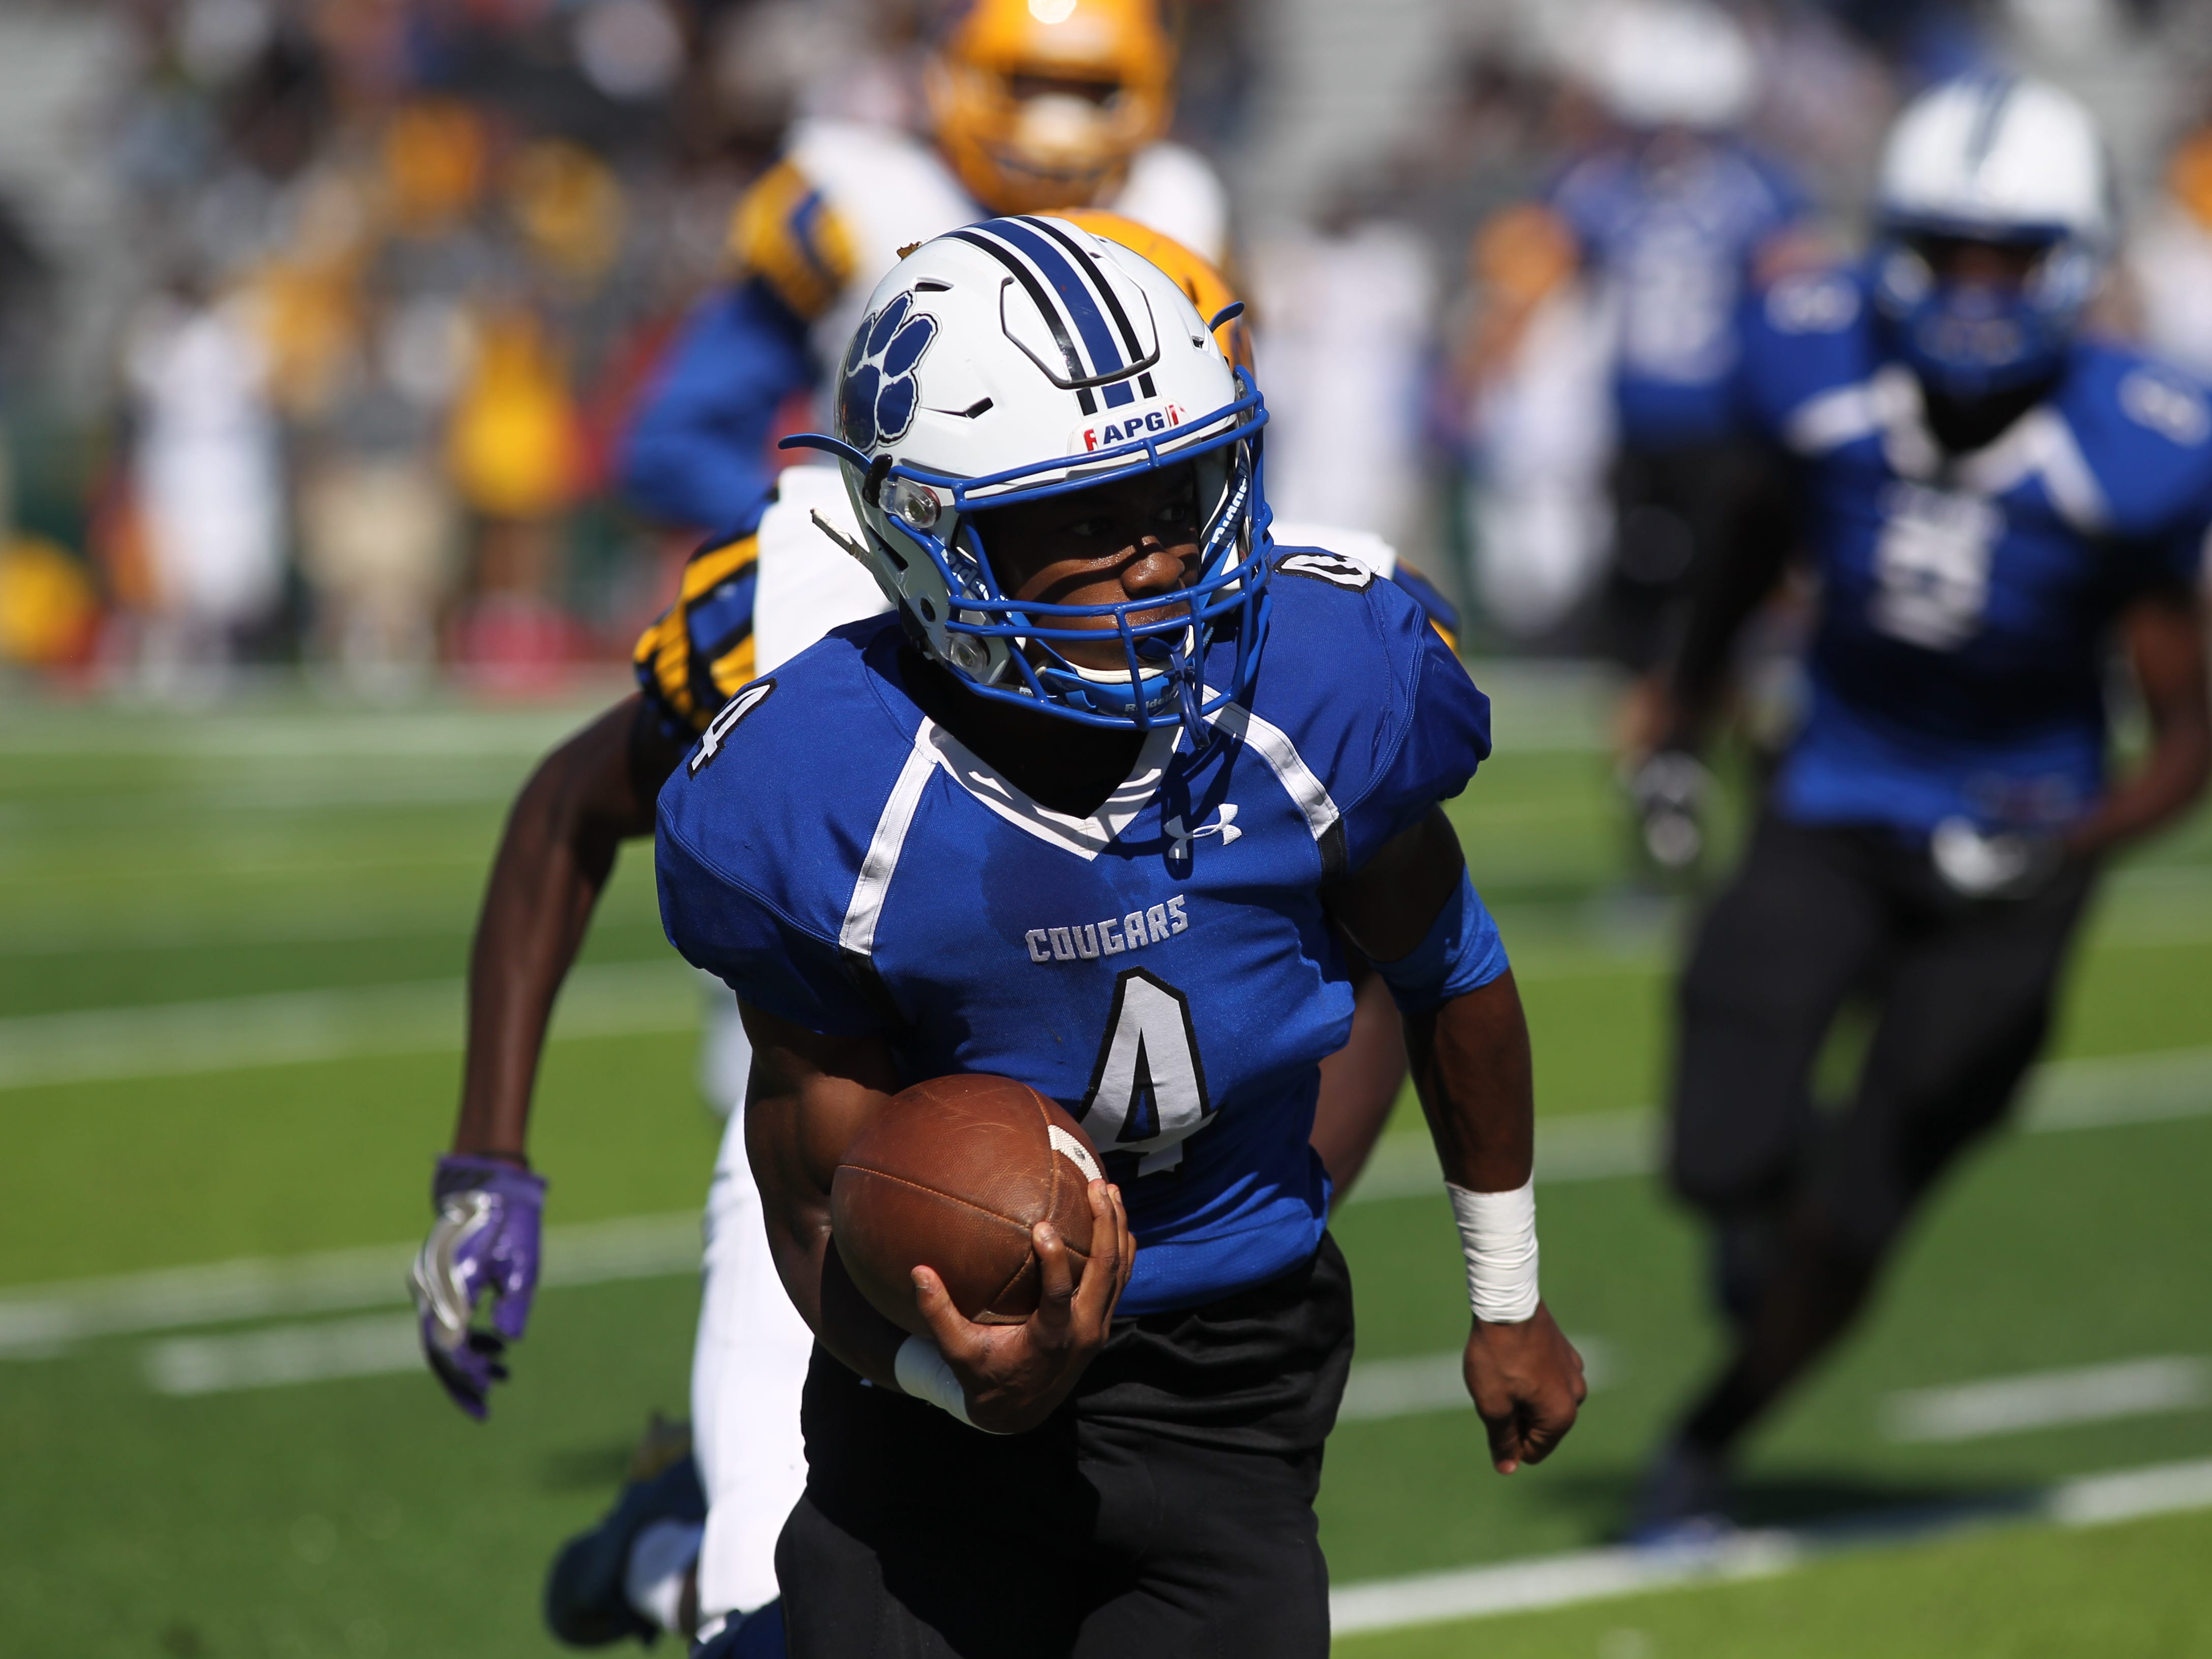 Godby receiver Alvin Jones breaks a 25-yard touchdown on a receiver screen during Saturday's win over Rickards.